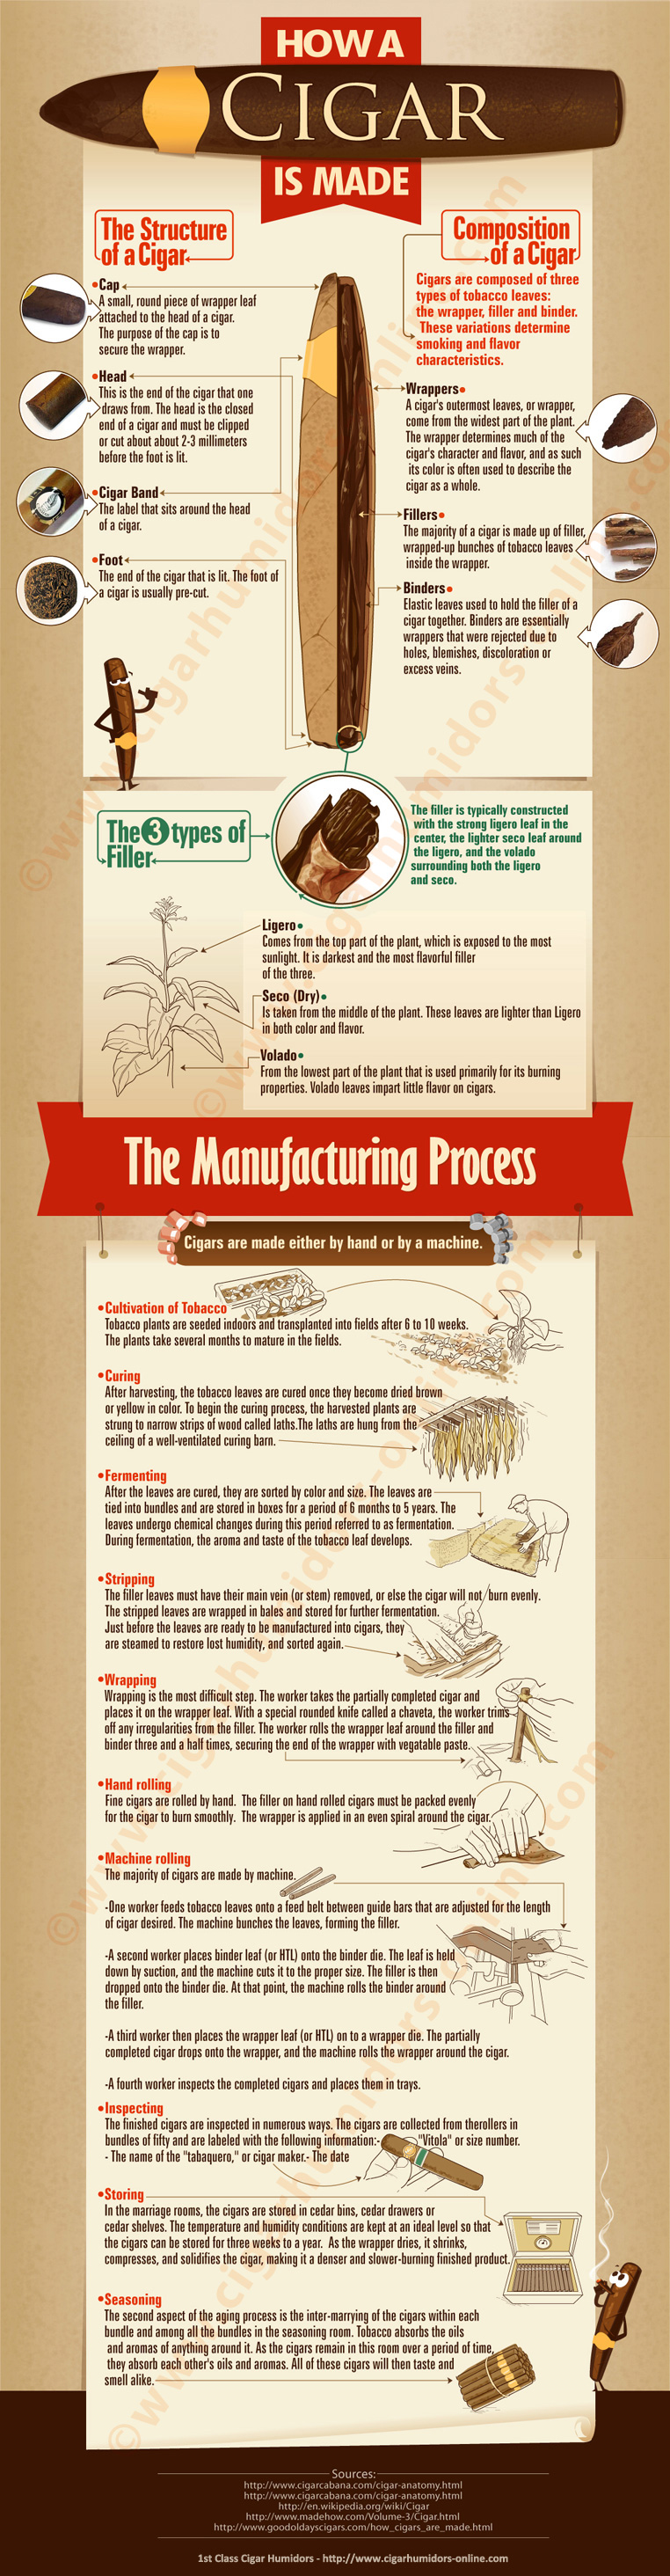 How a Cigar is Made